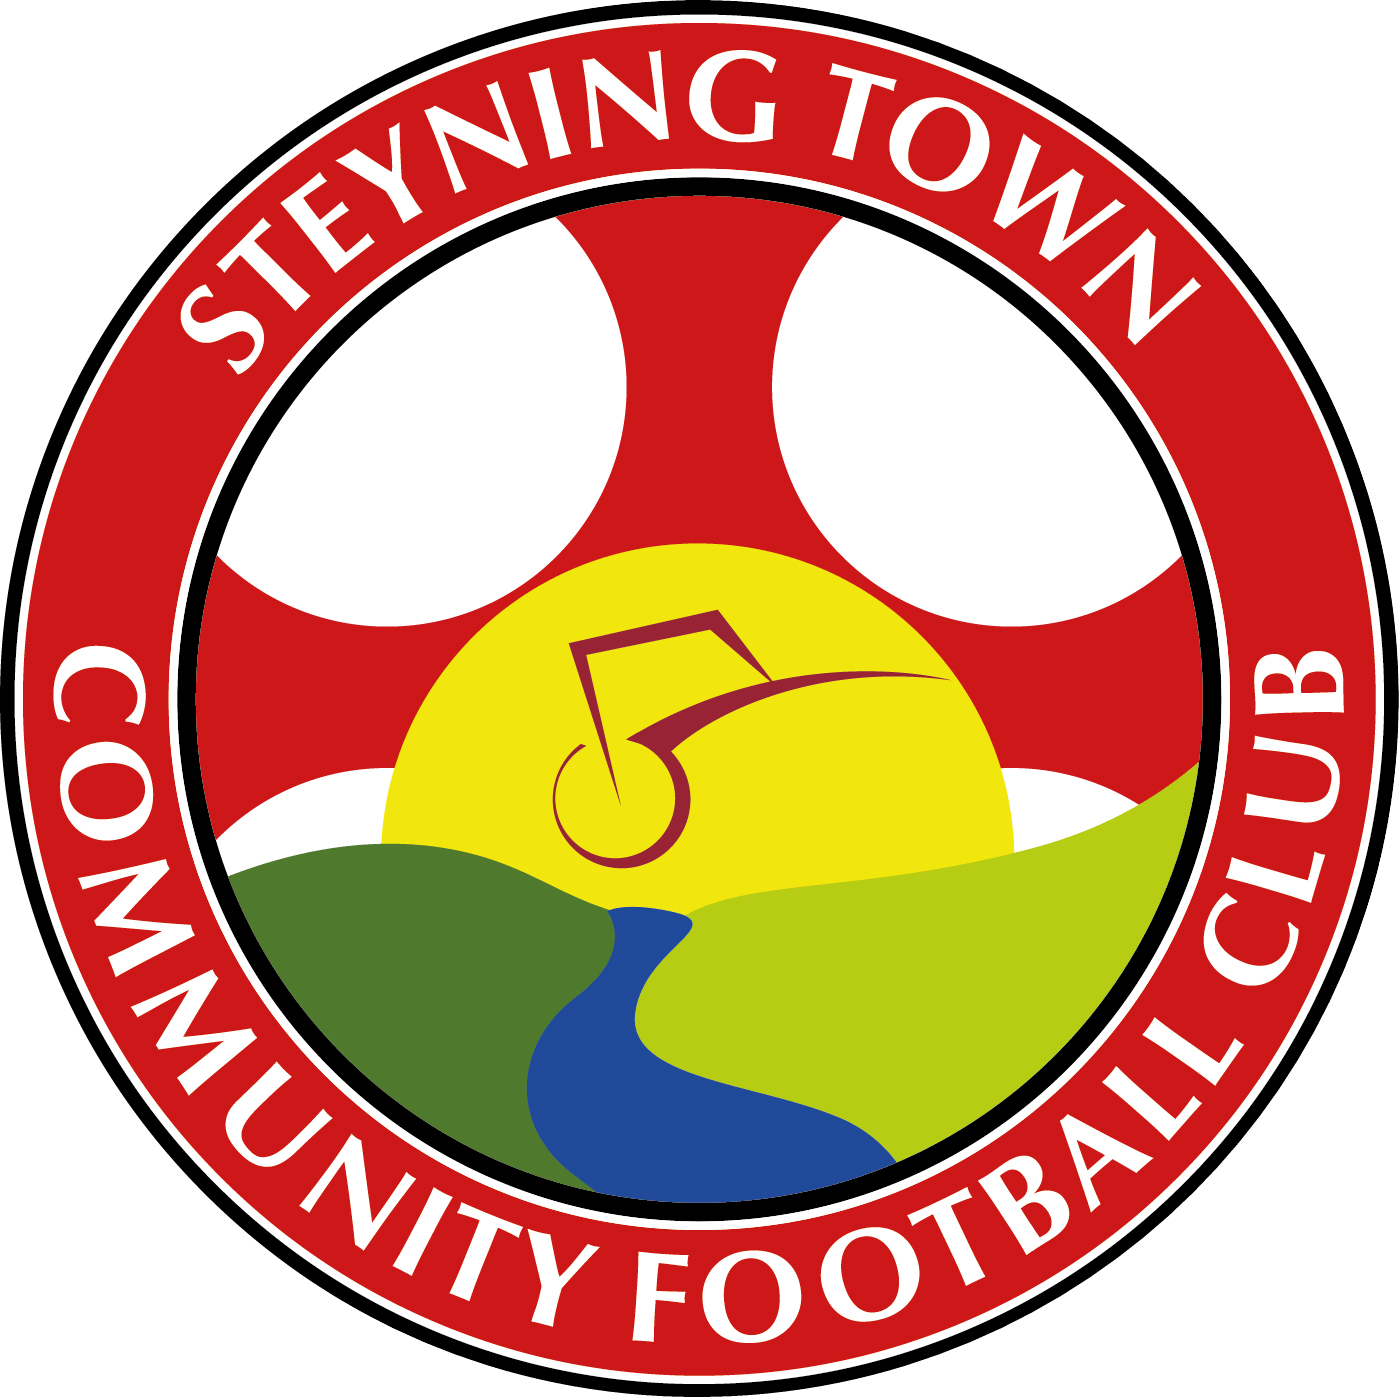 Steyning Town CFC